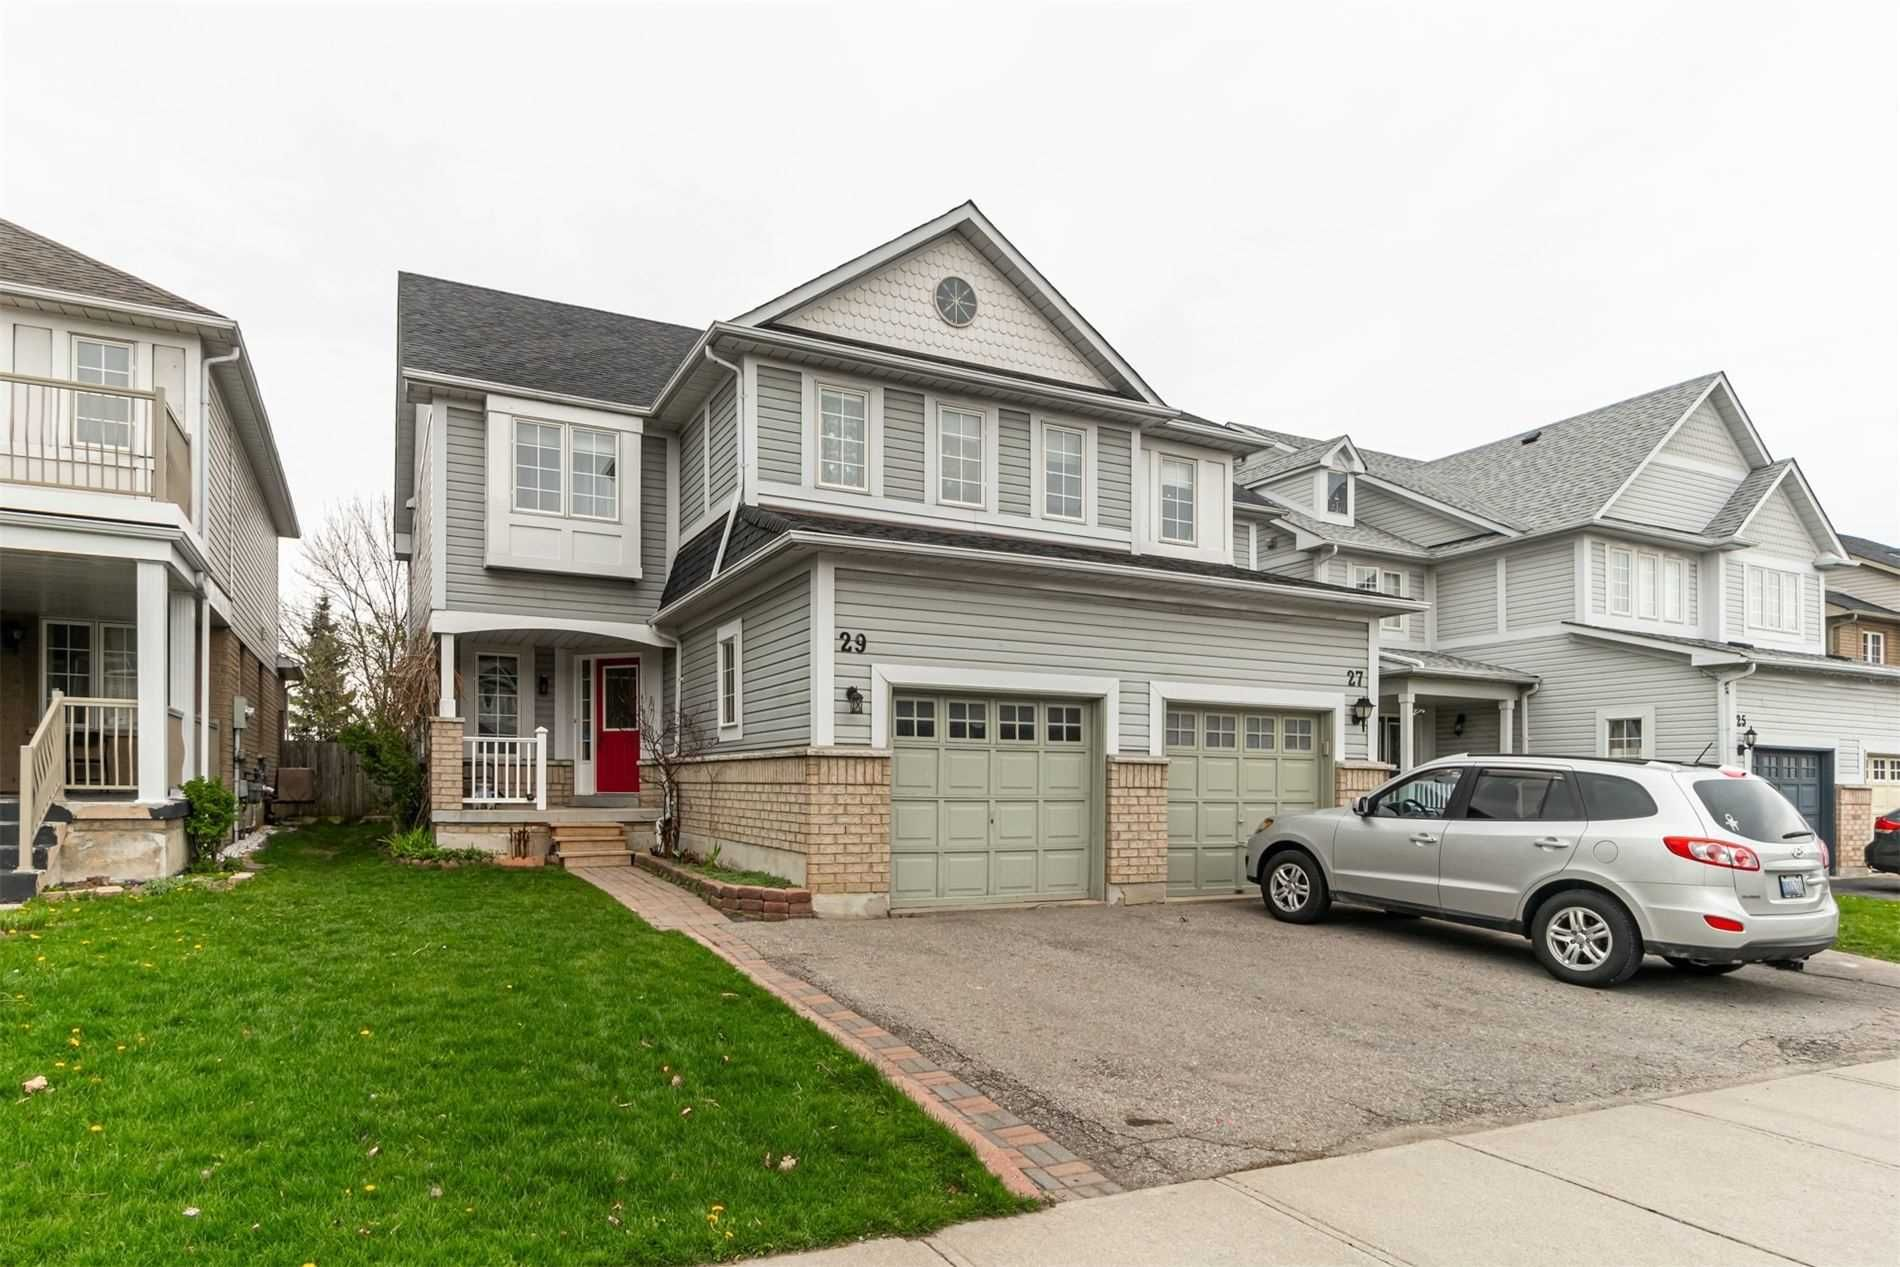 Main Photo: 29 Regatta Crescent in Whitby: Port Whitby House (2-Storey) for sale : MLS®# E4763610